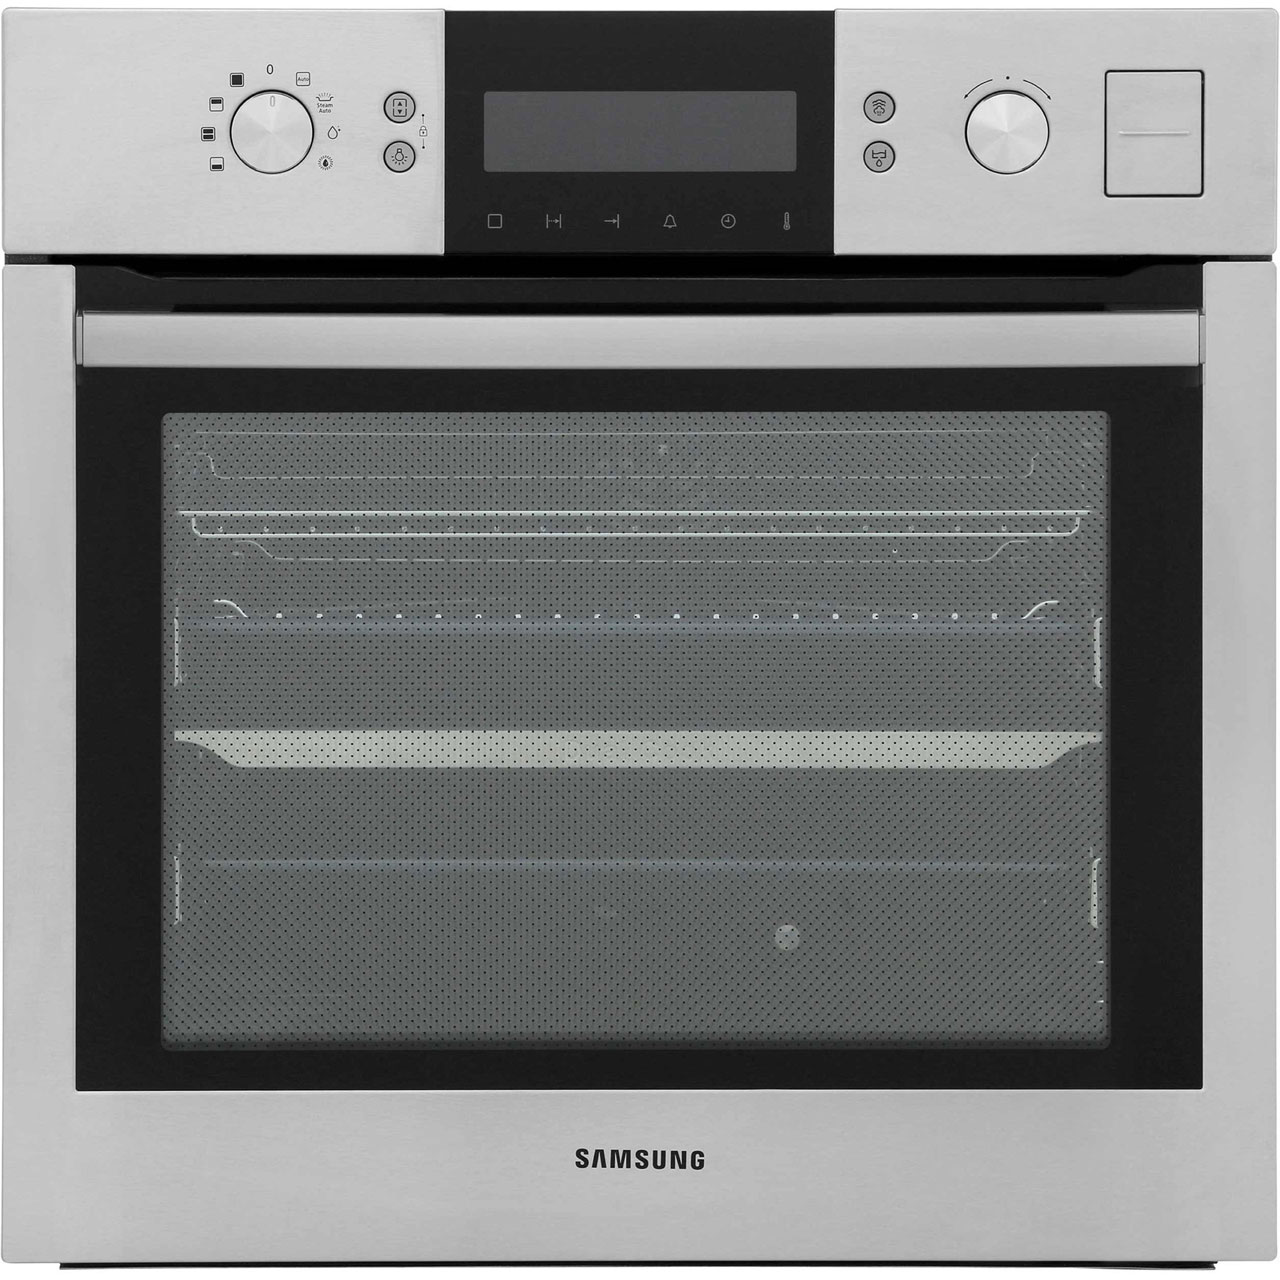 samsung geo dual cook steam bq1vd6t131 built in electric single oven stainless steel a rated. Black Bedroom Furniture Sets. Home Design Ideas